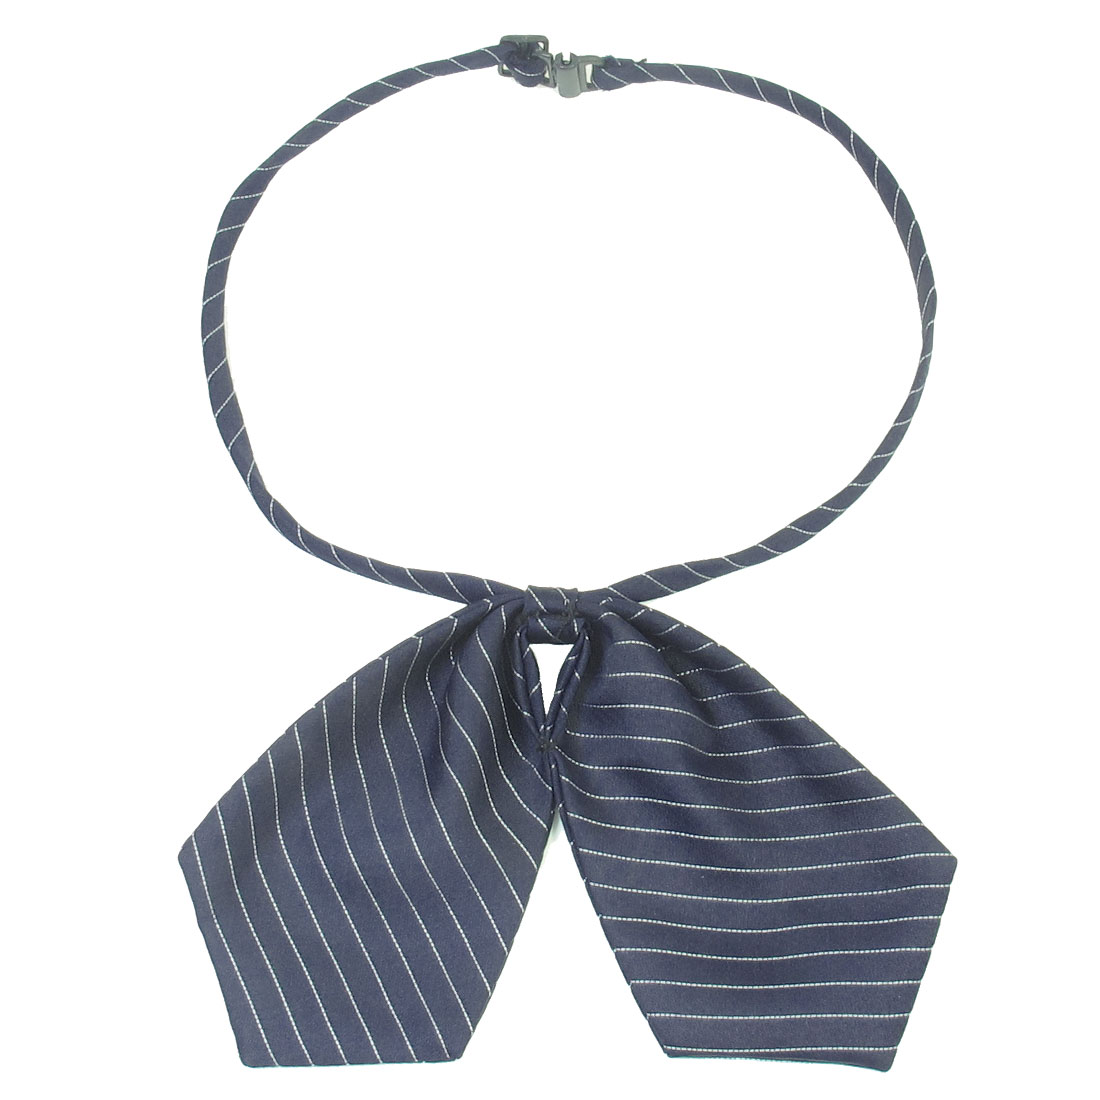 Unise Adjustable Strap Dark Blue White Bowknot Decor Pre Tie Necktie